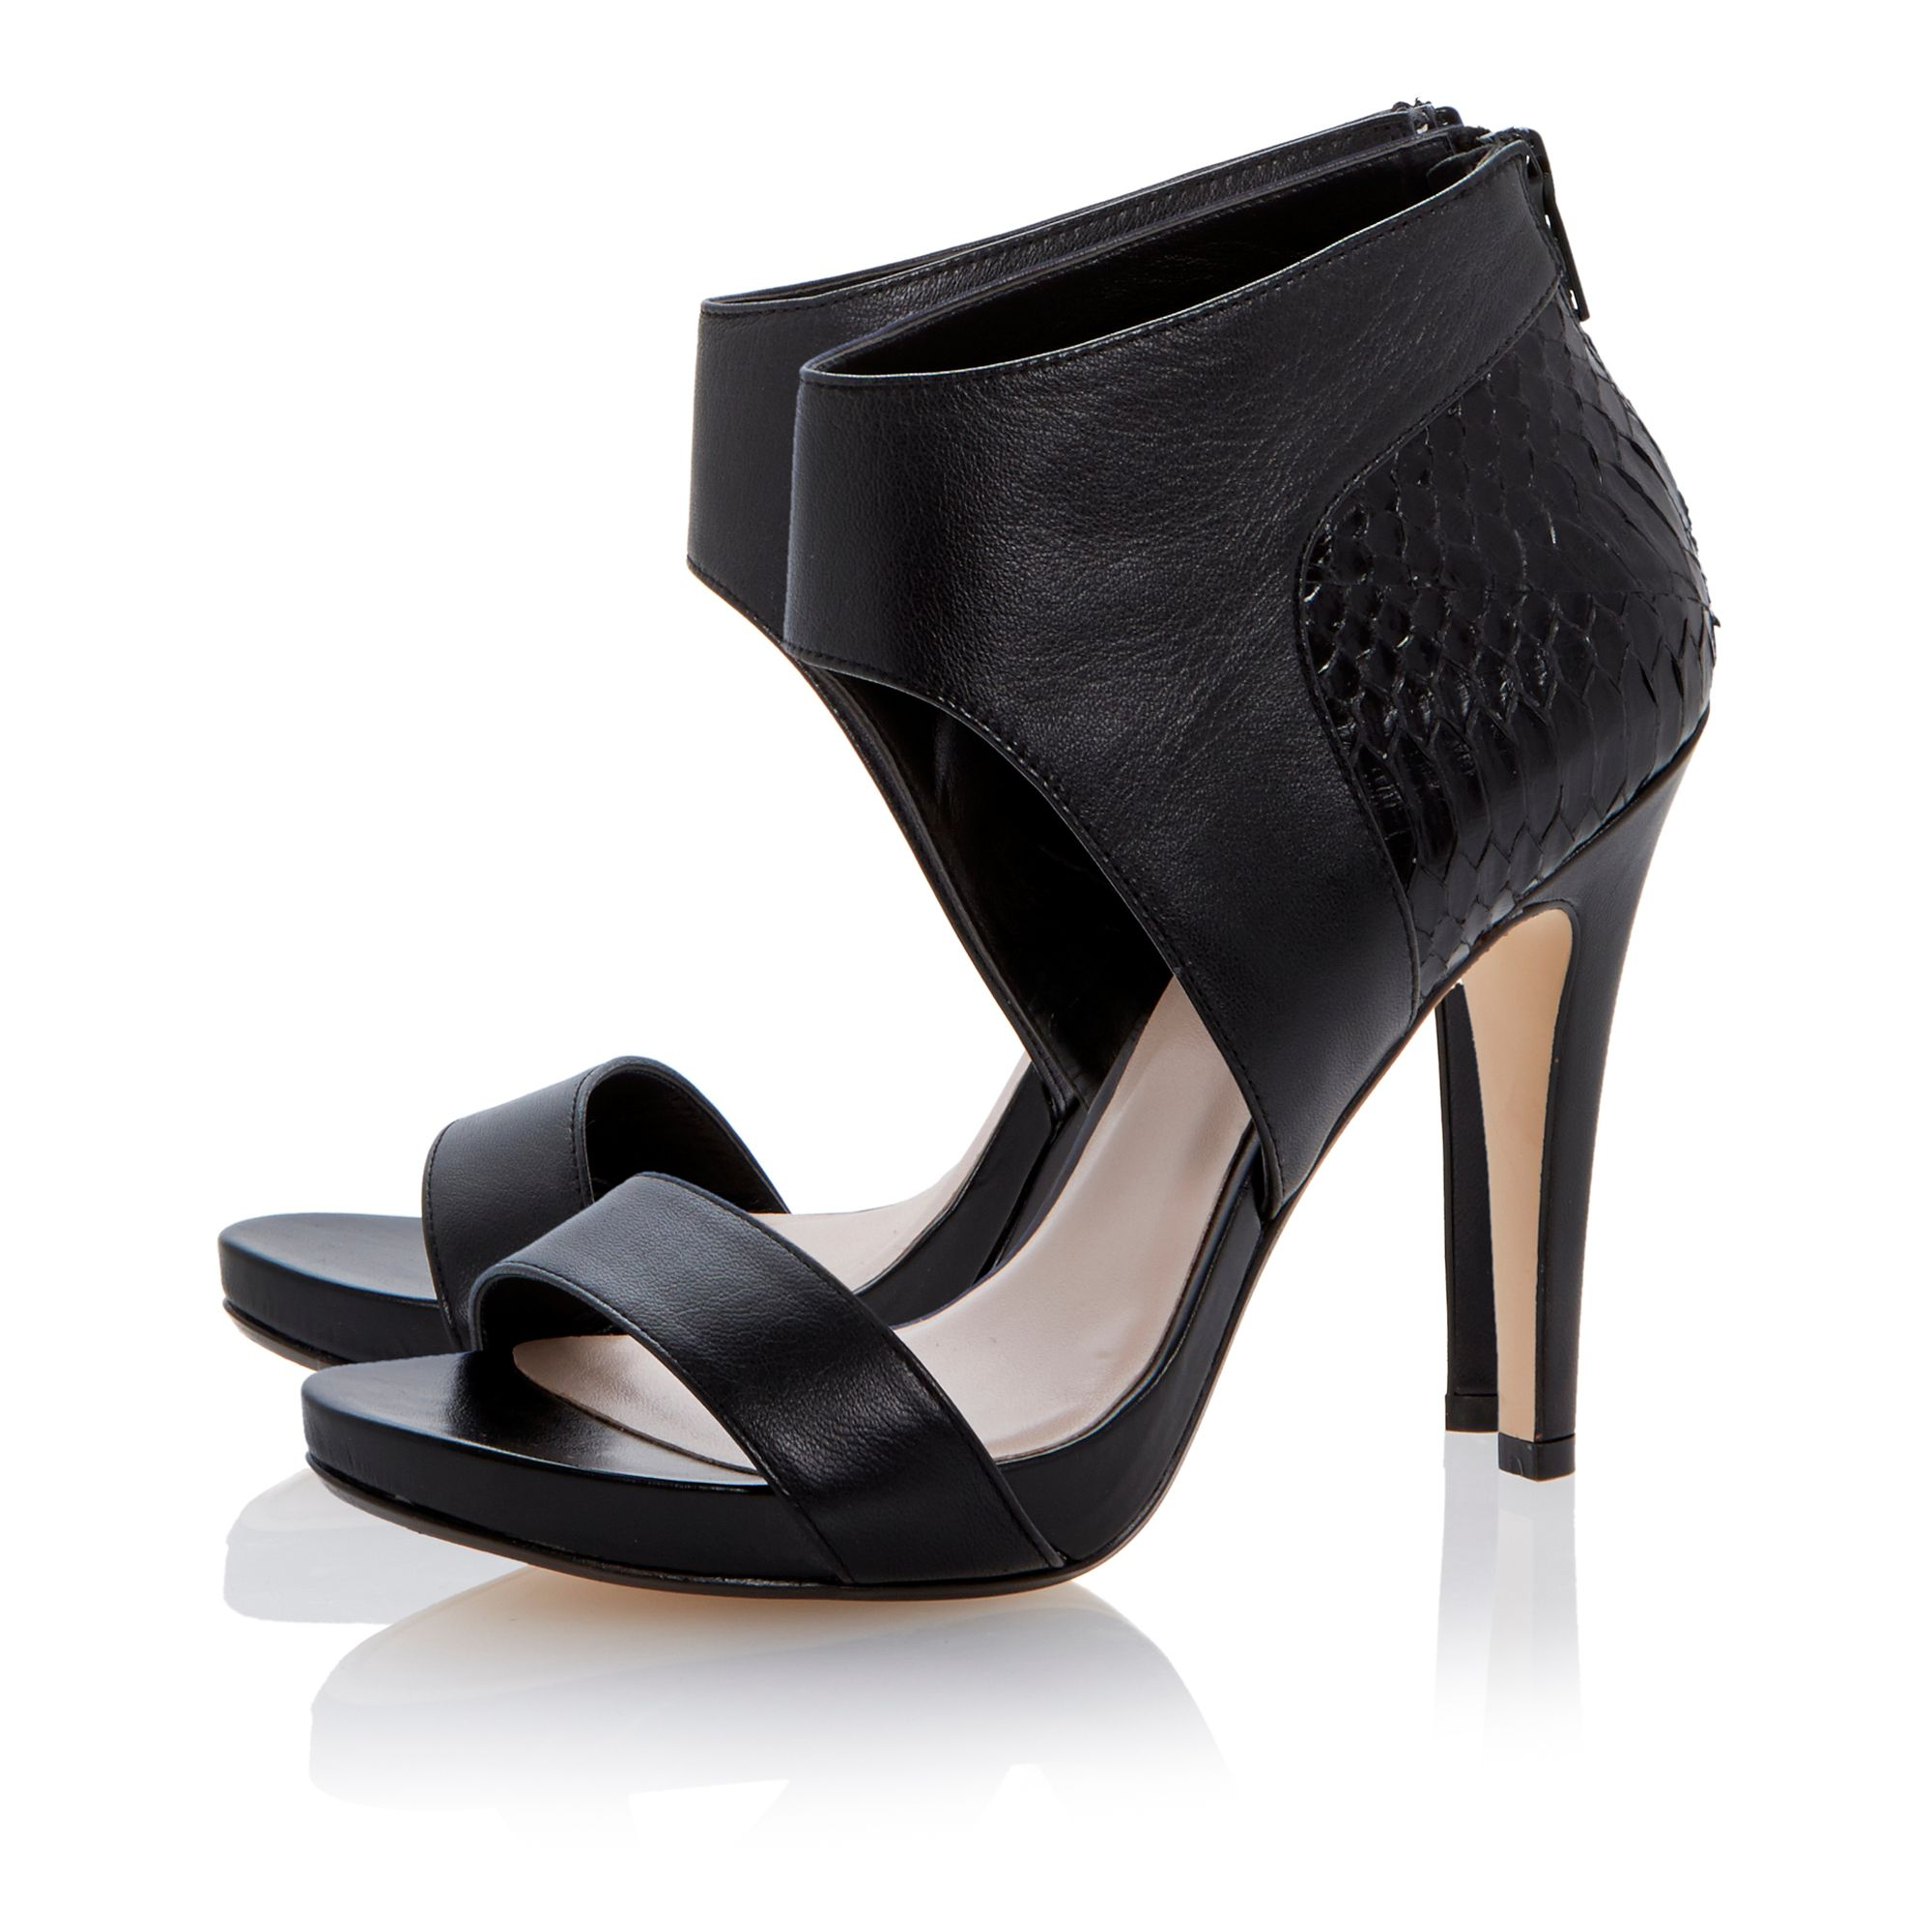 Hanah leather stiletto dressy sandals